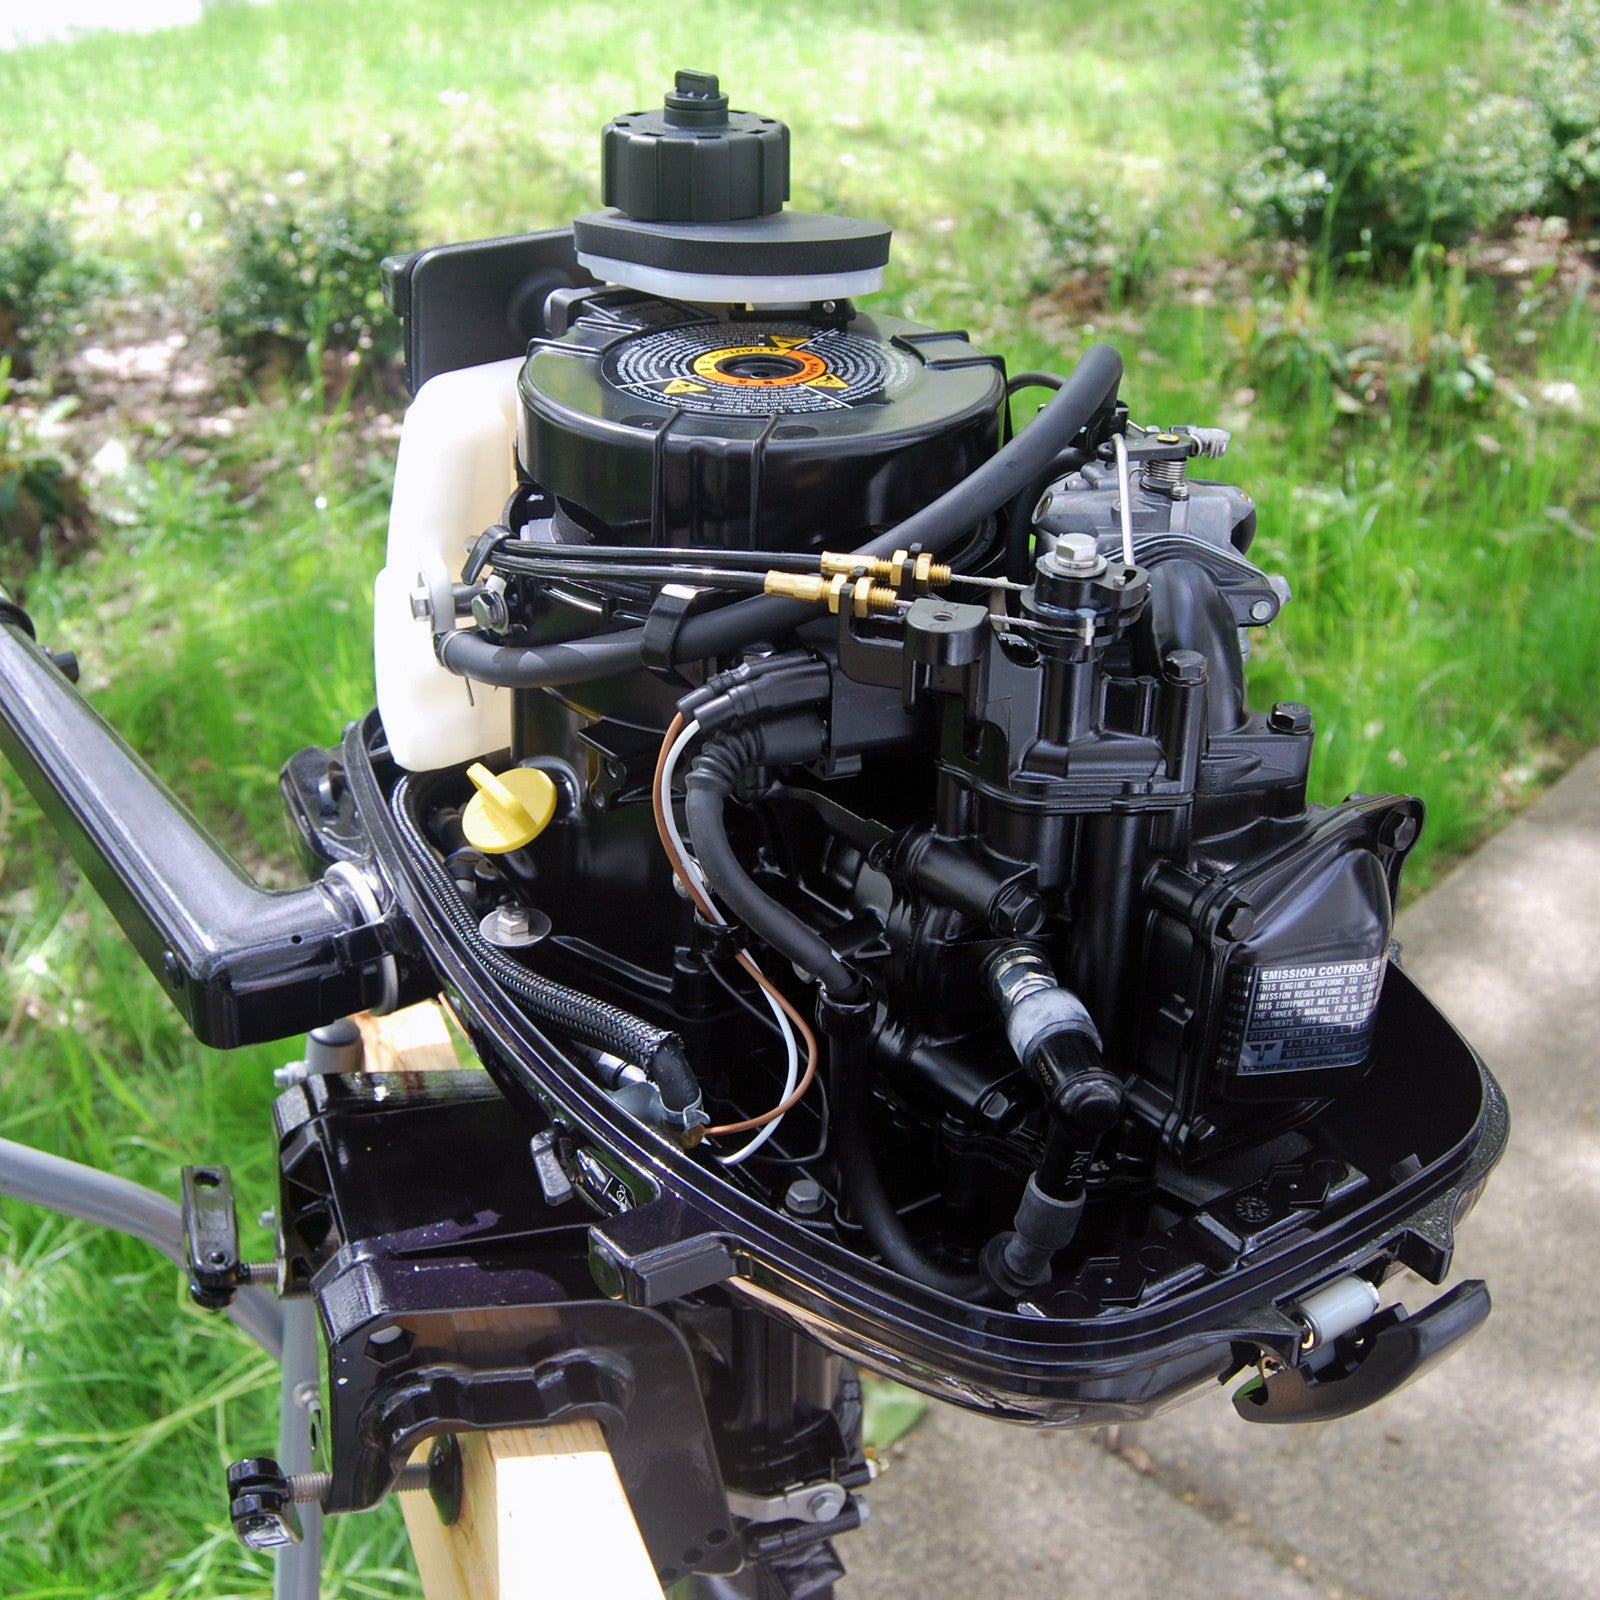 Tohatsu 4 stroke 6hp outboard motor tiller handle new in for 6 hp motor for sale